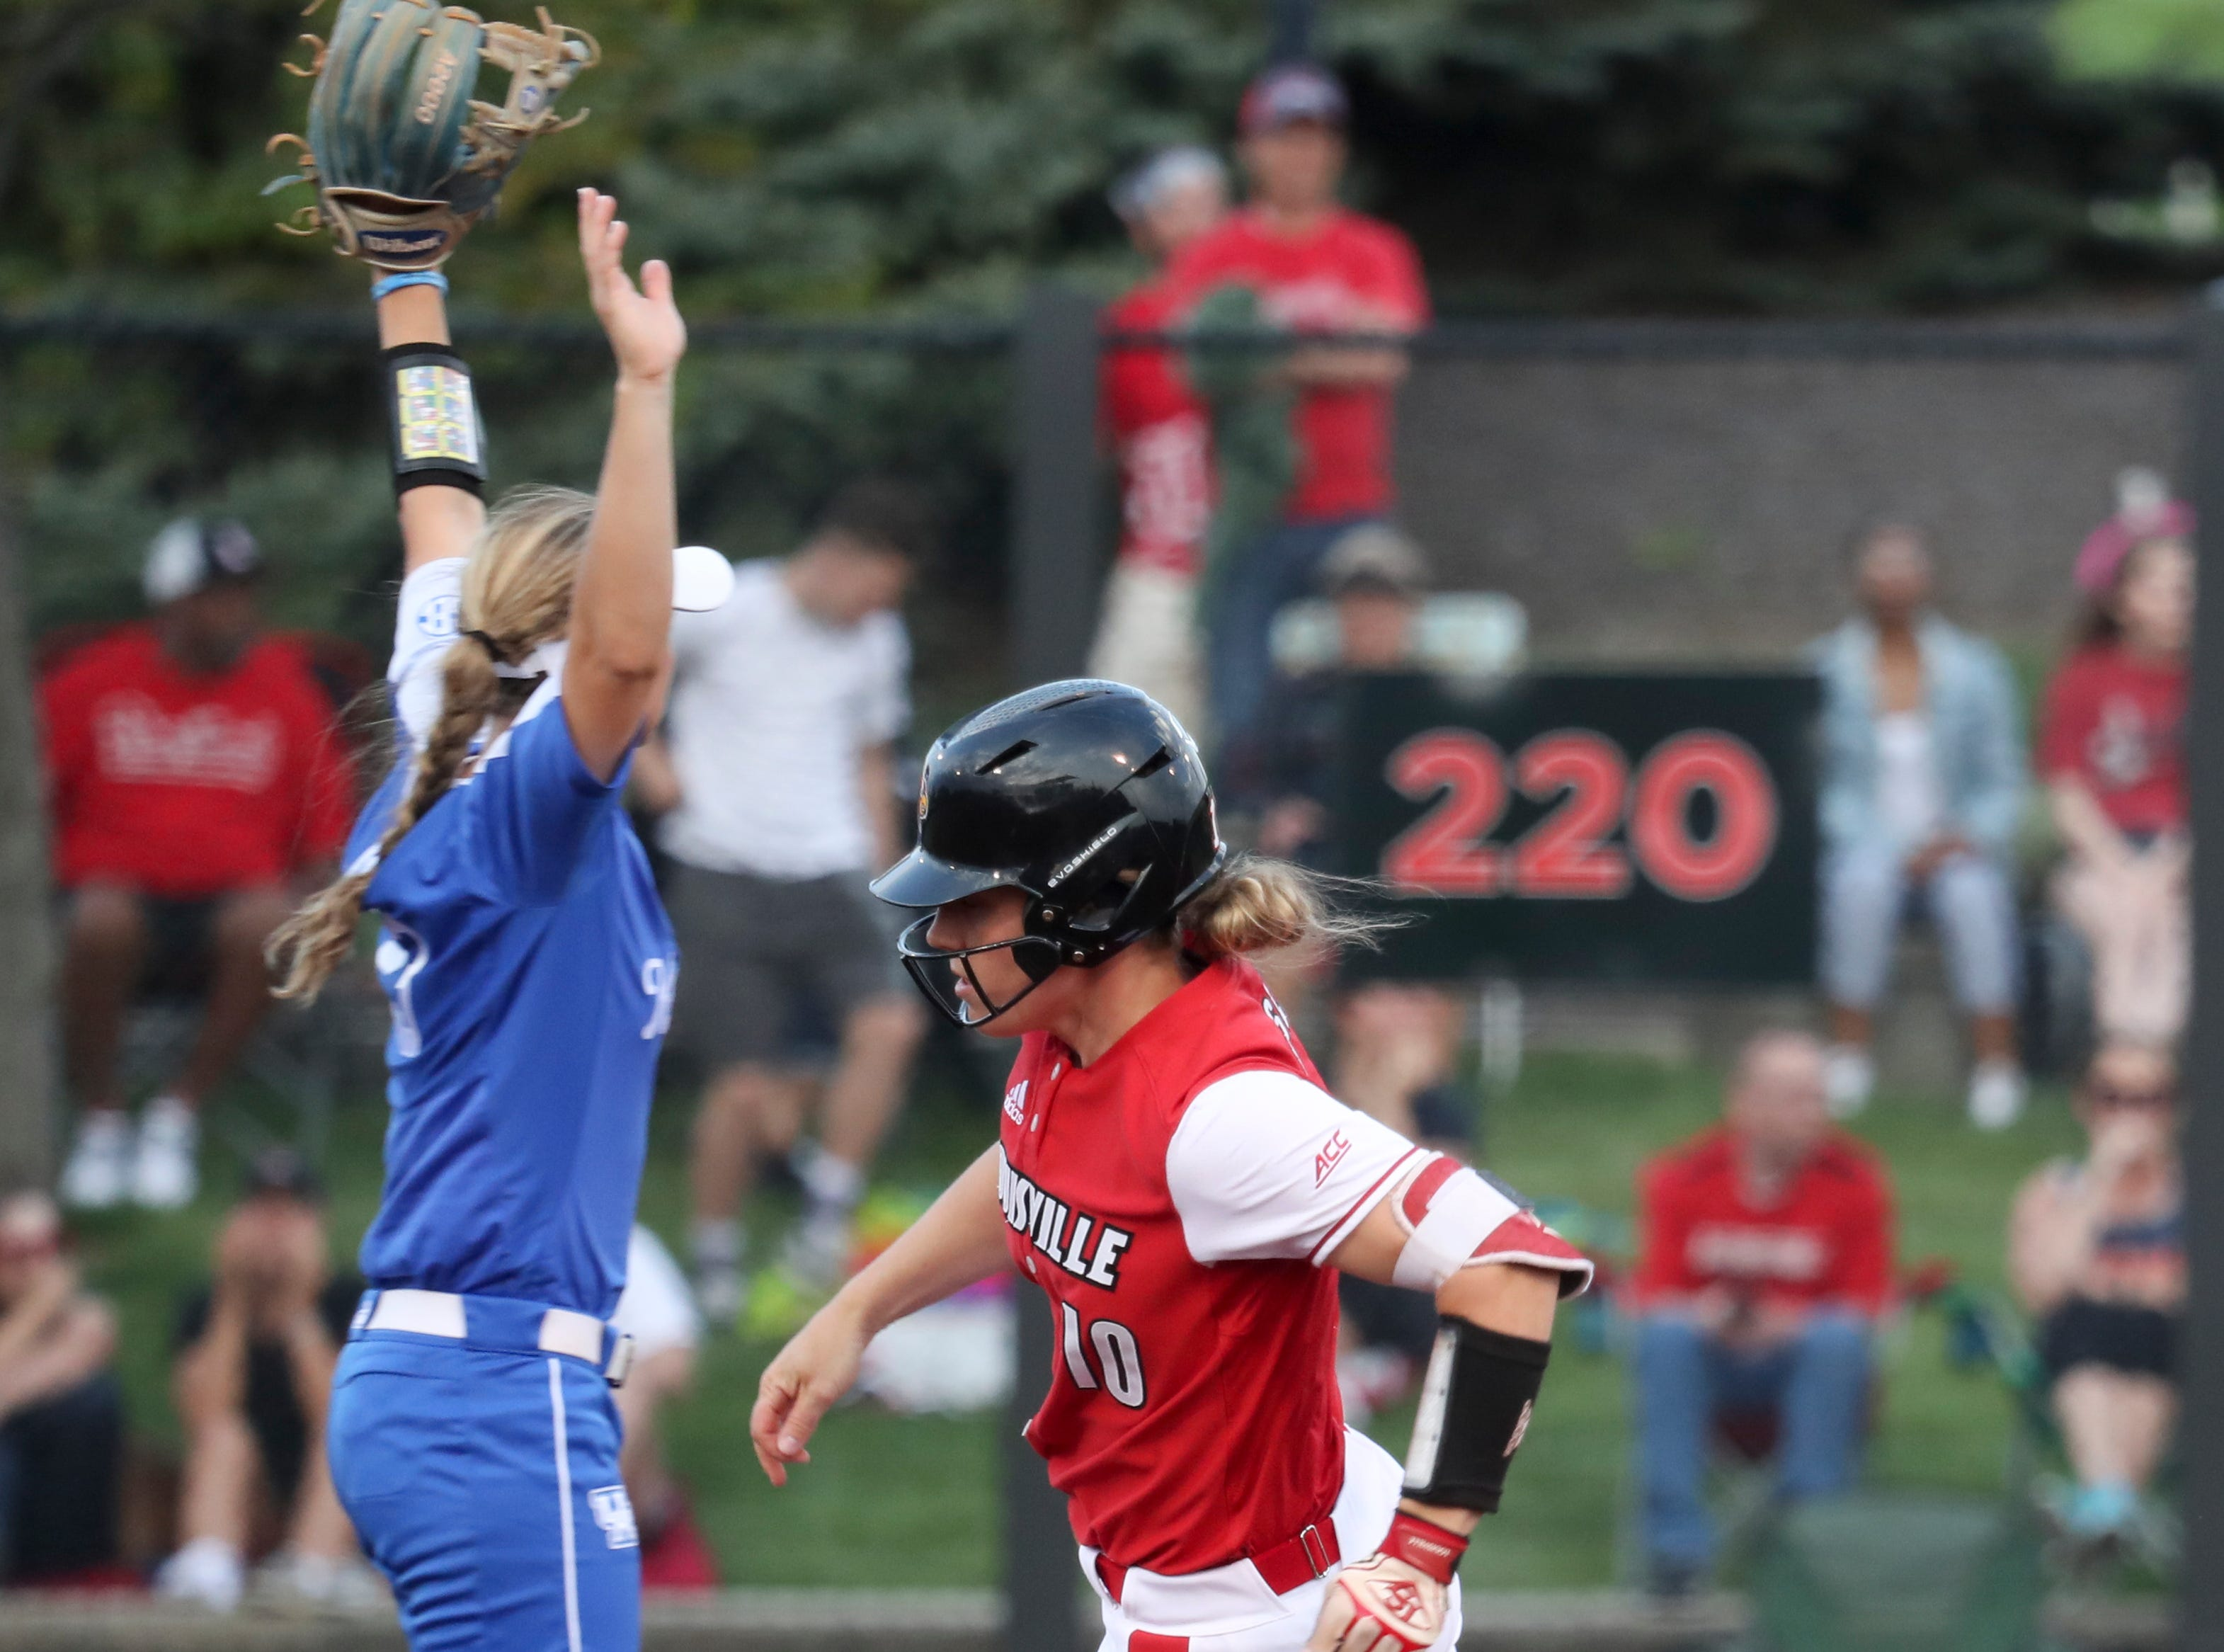 Louisville's Megan Hensley rounds second on her way to a 2 rbi triple against Kentucky on April 17.